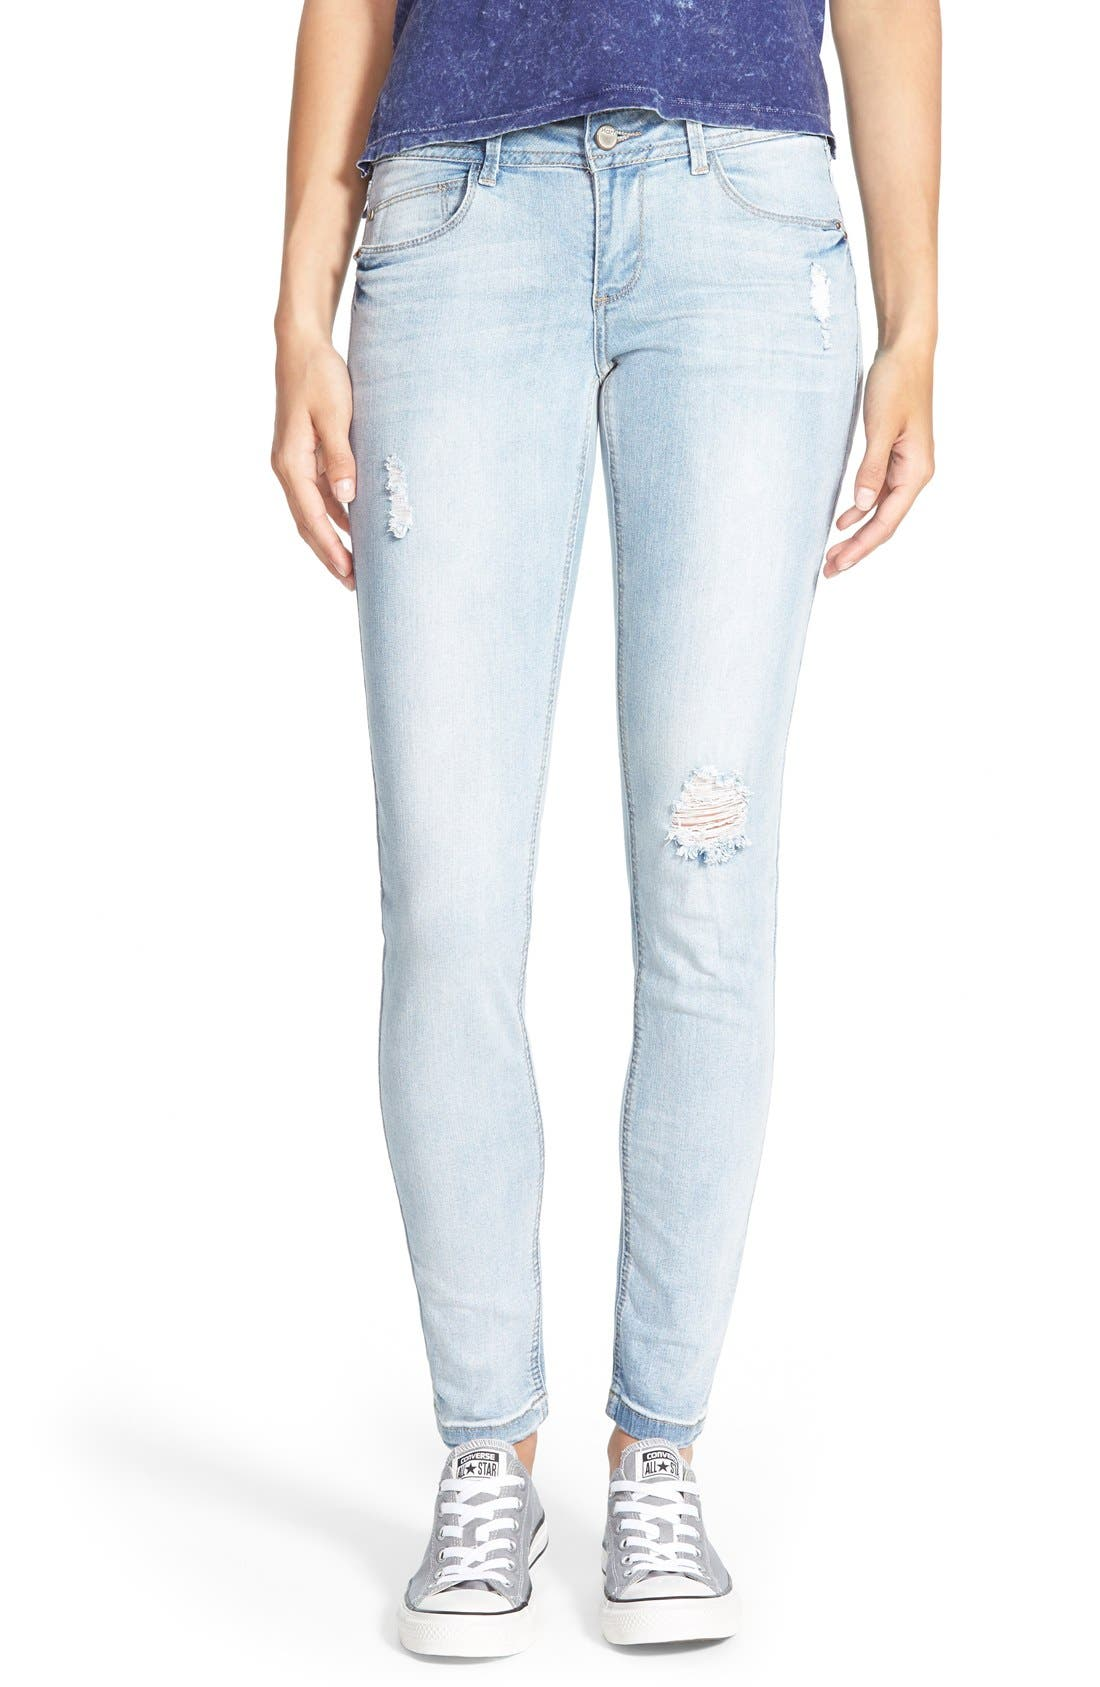 Main Image - HART Denim Deconstructed Skinny Jeans (Light)